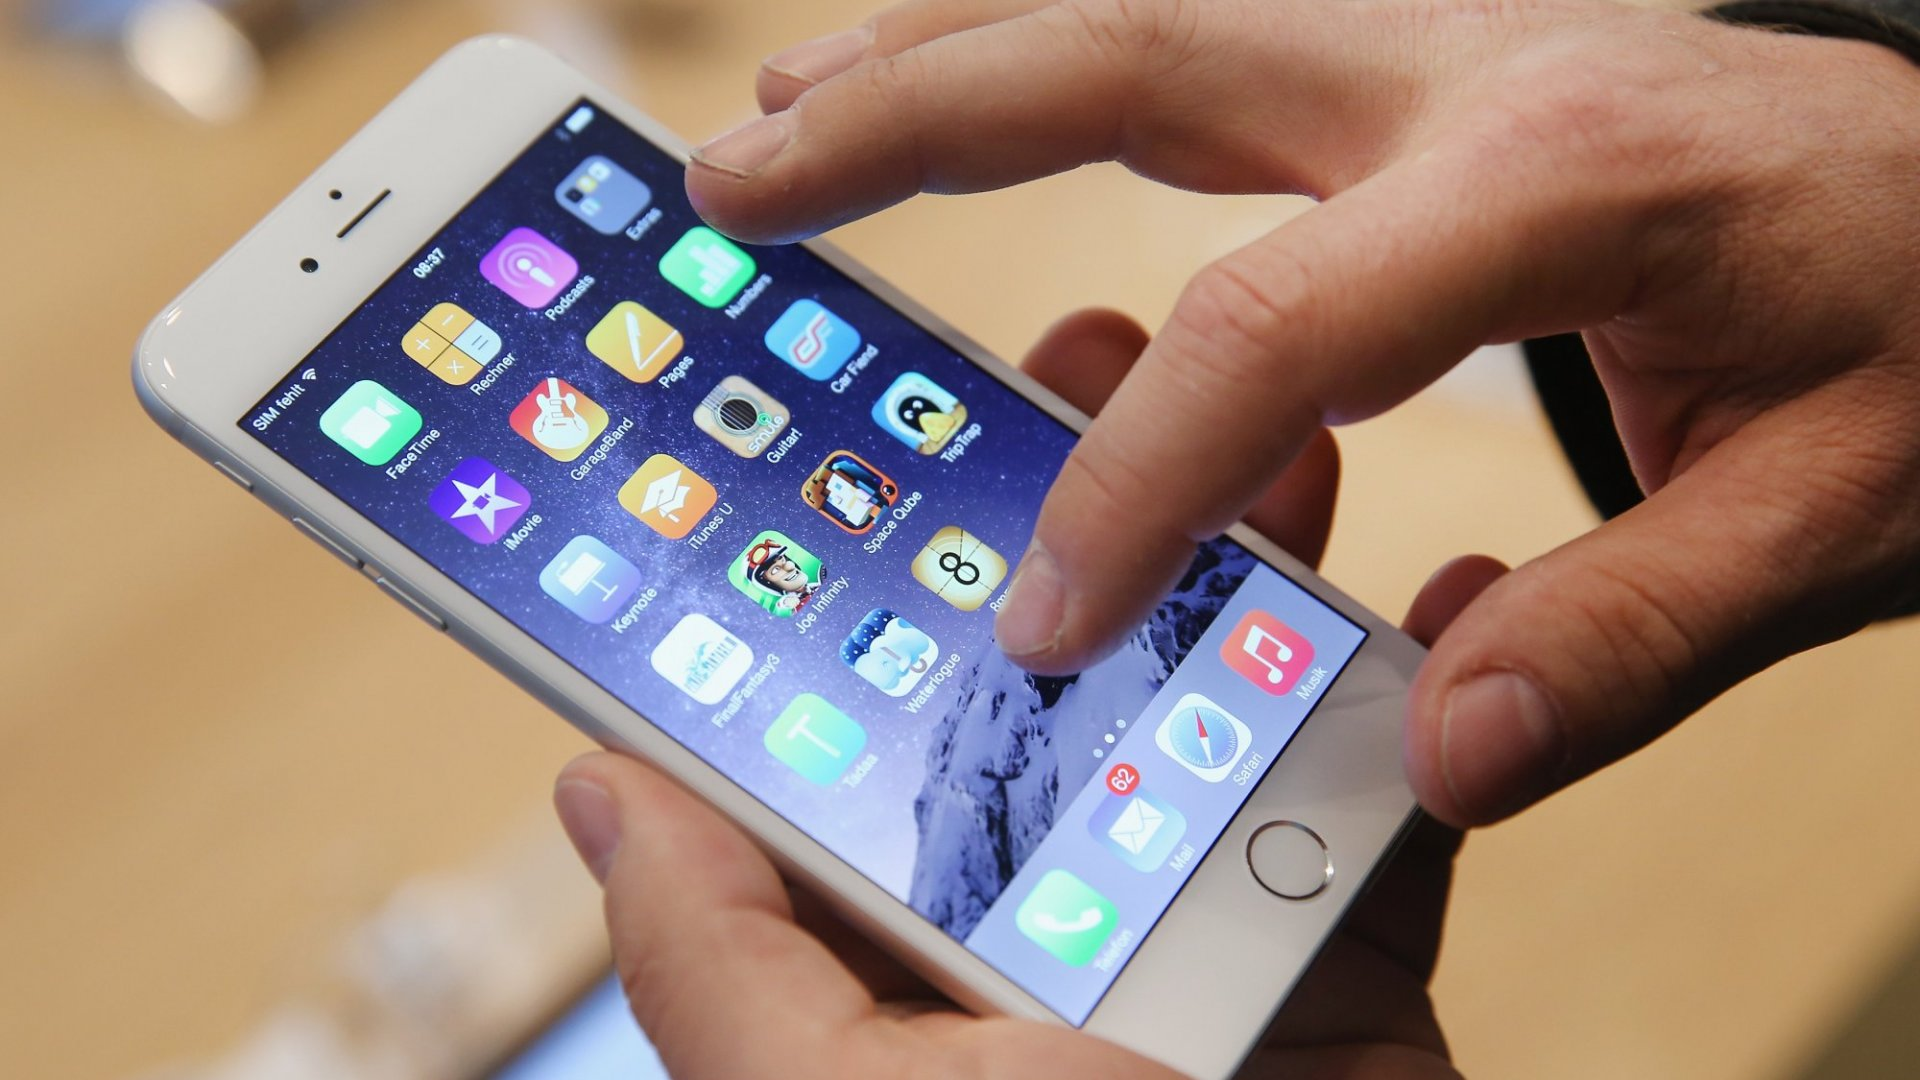 Apple Just Admitted iPhones Have a Serious Design Flaw--and the Company Knew It All Along